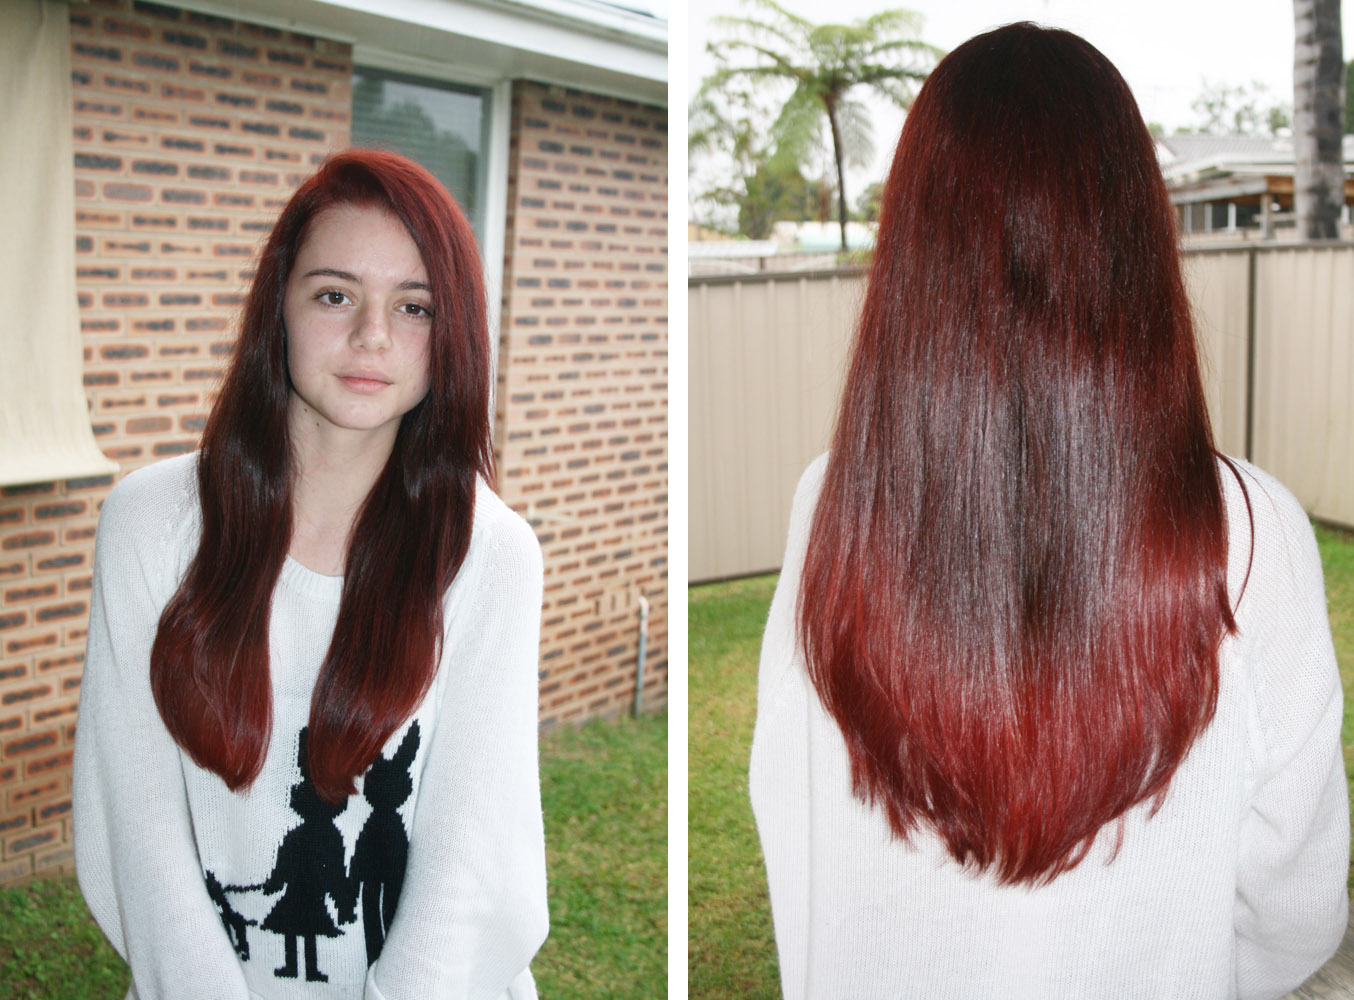 Hair dye tutorial dark to light shades of red now thats peachy hair dye tutorial dark to light shades of red solutioingenieria Gallery